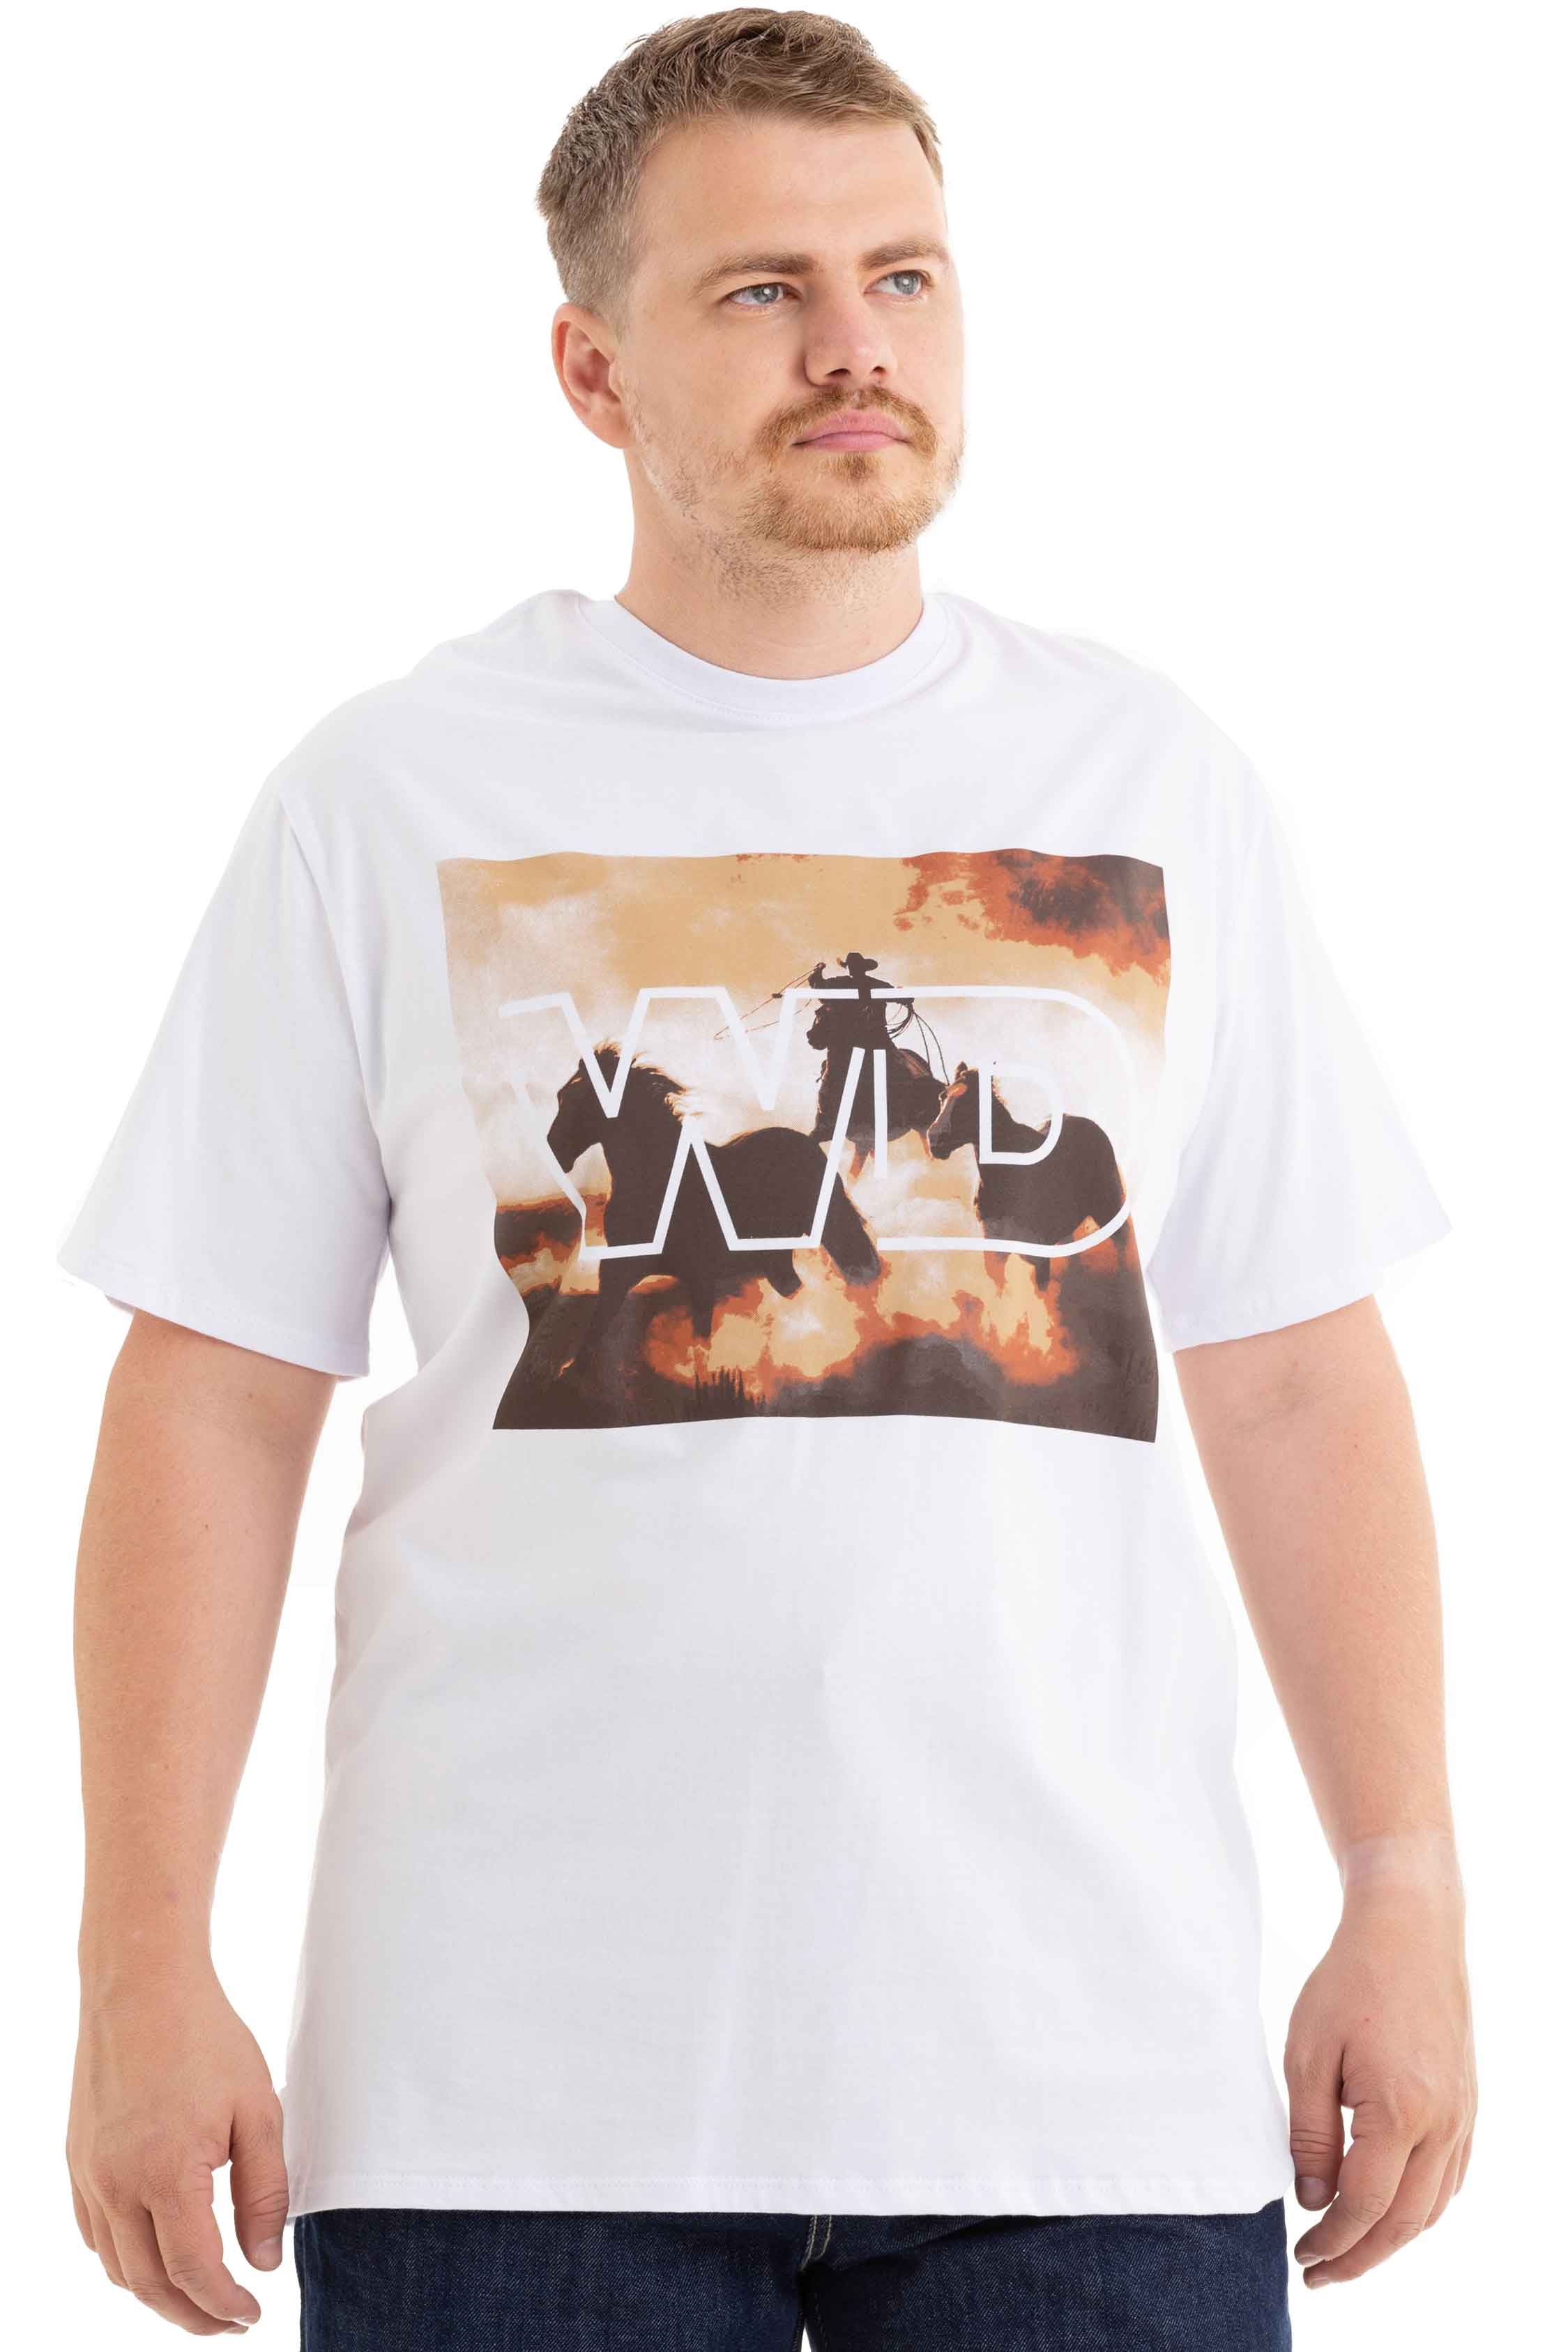 T-SHIRT WEST DUST MASCULINA DALLAS